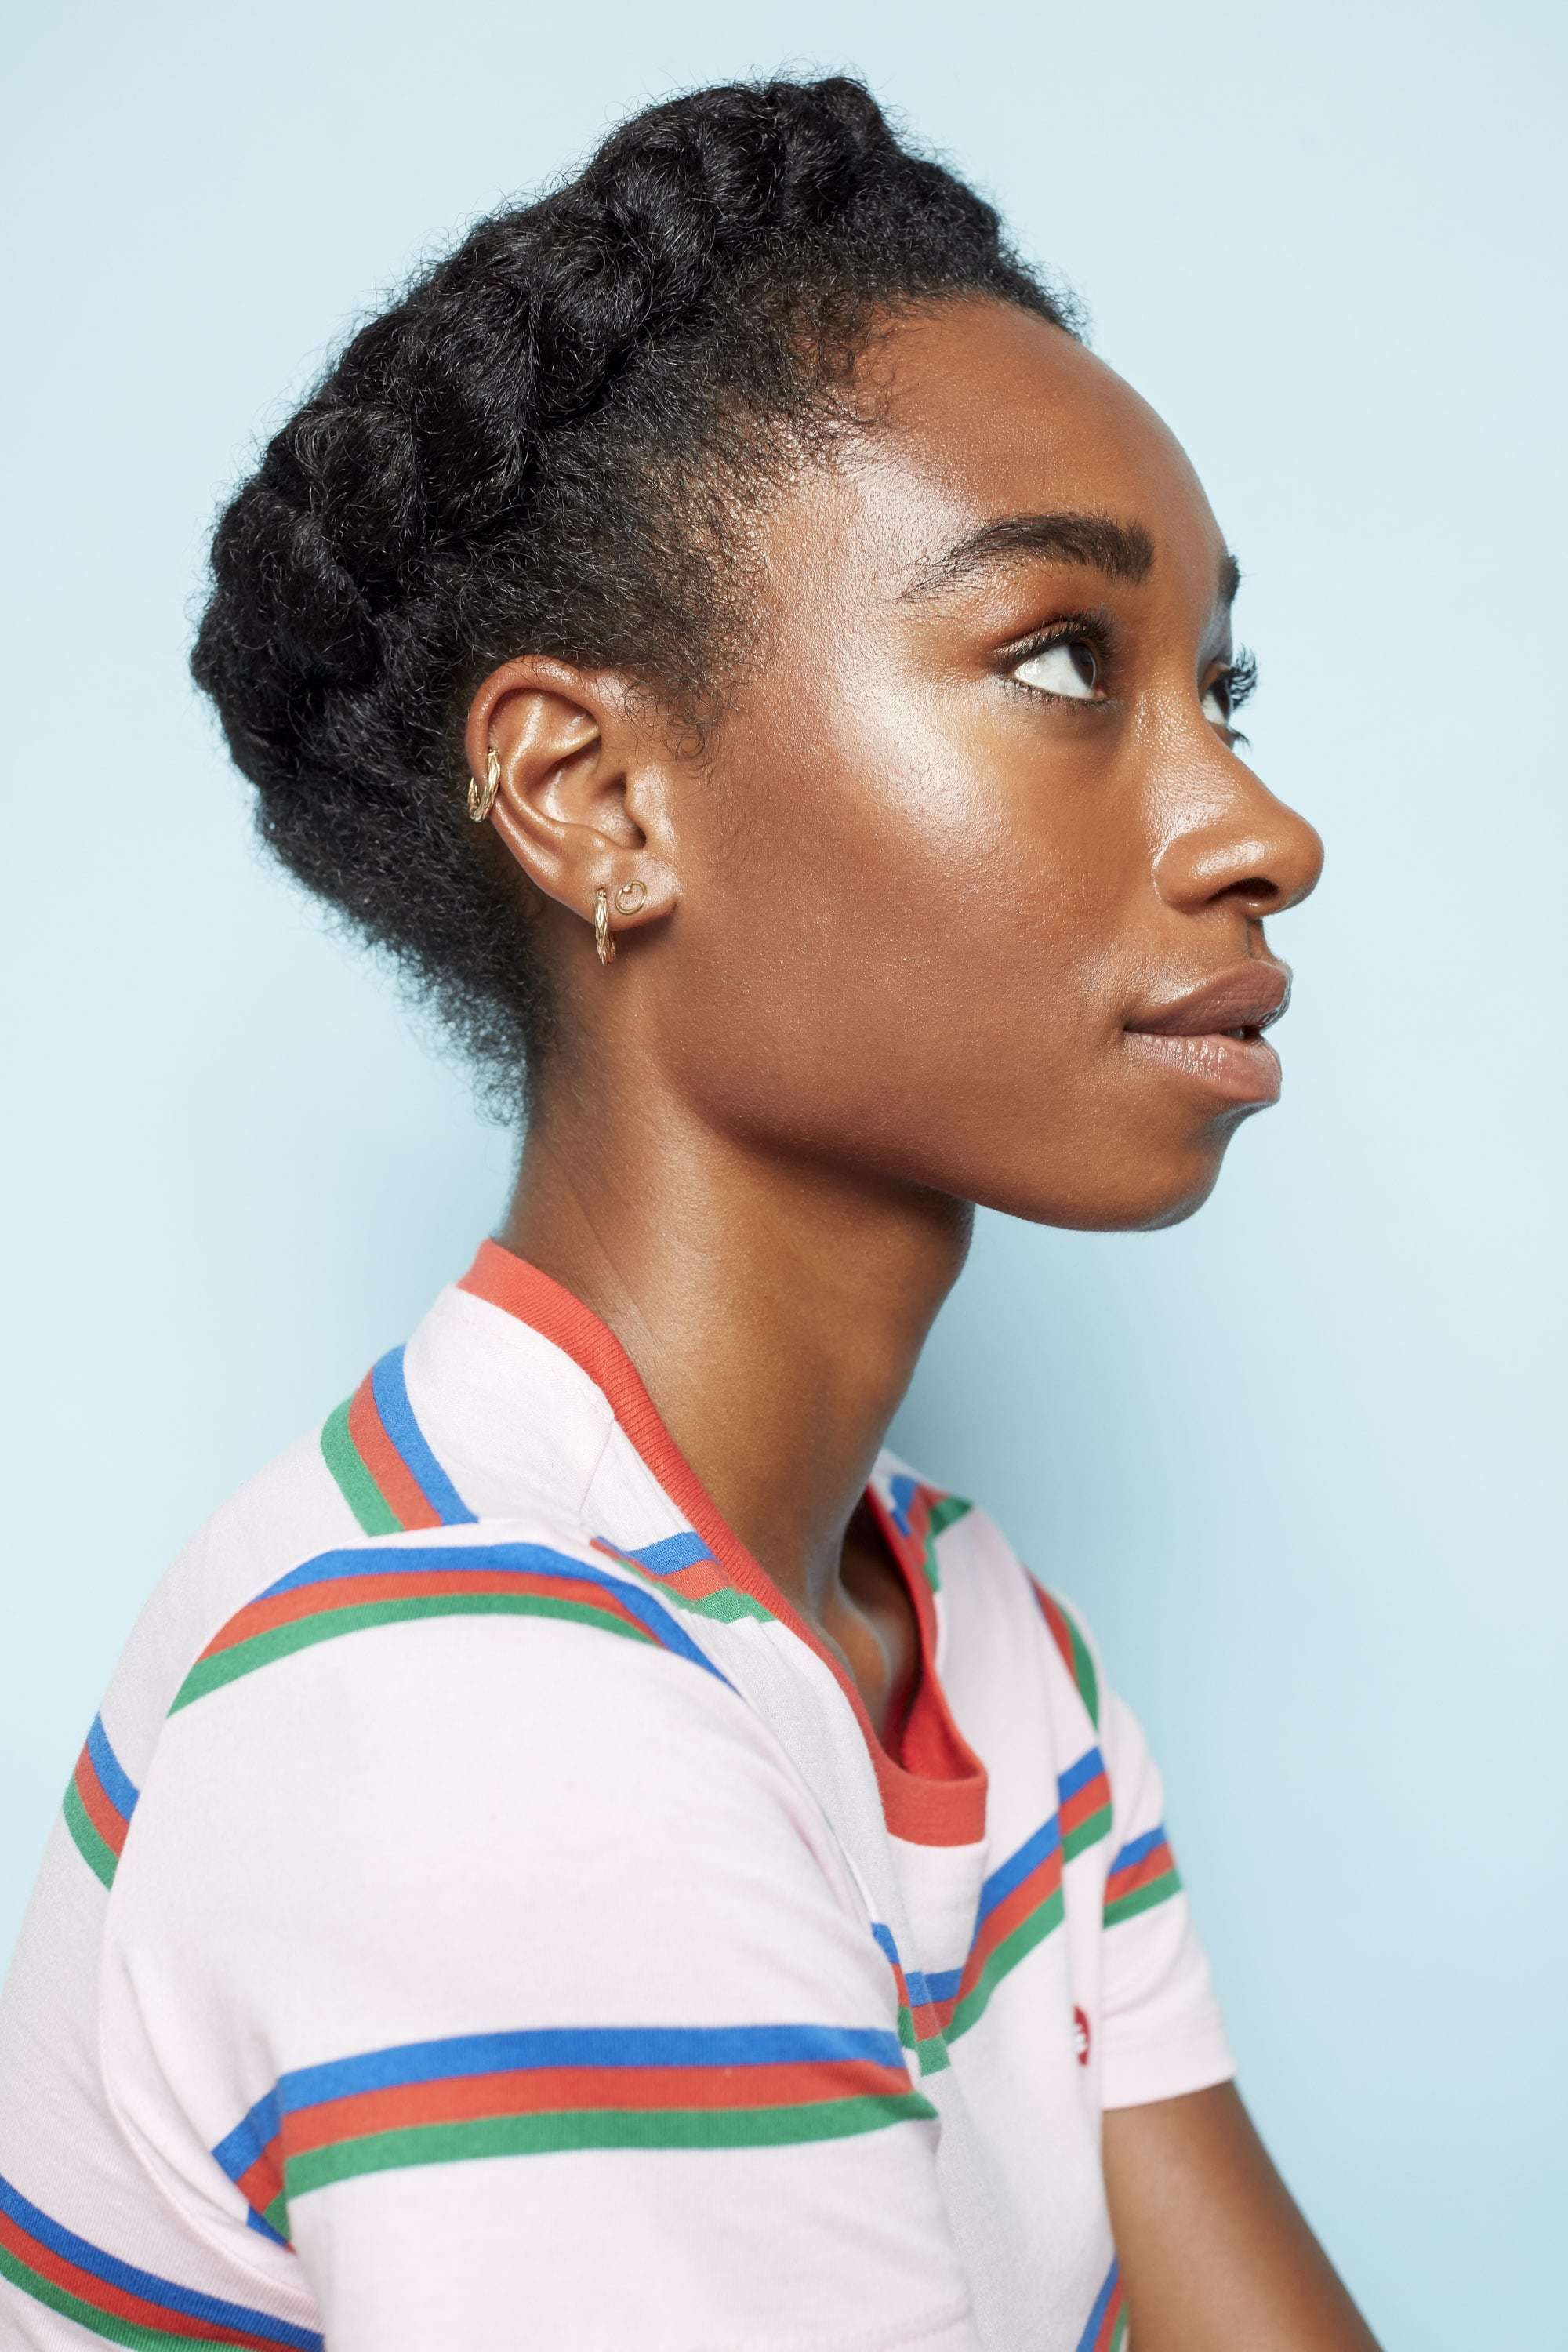 25 Cool Black Hairstyles To Instantly